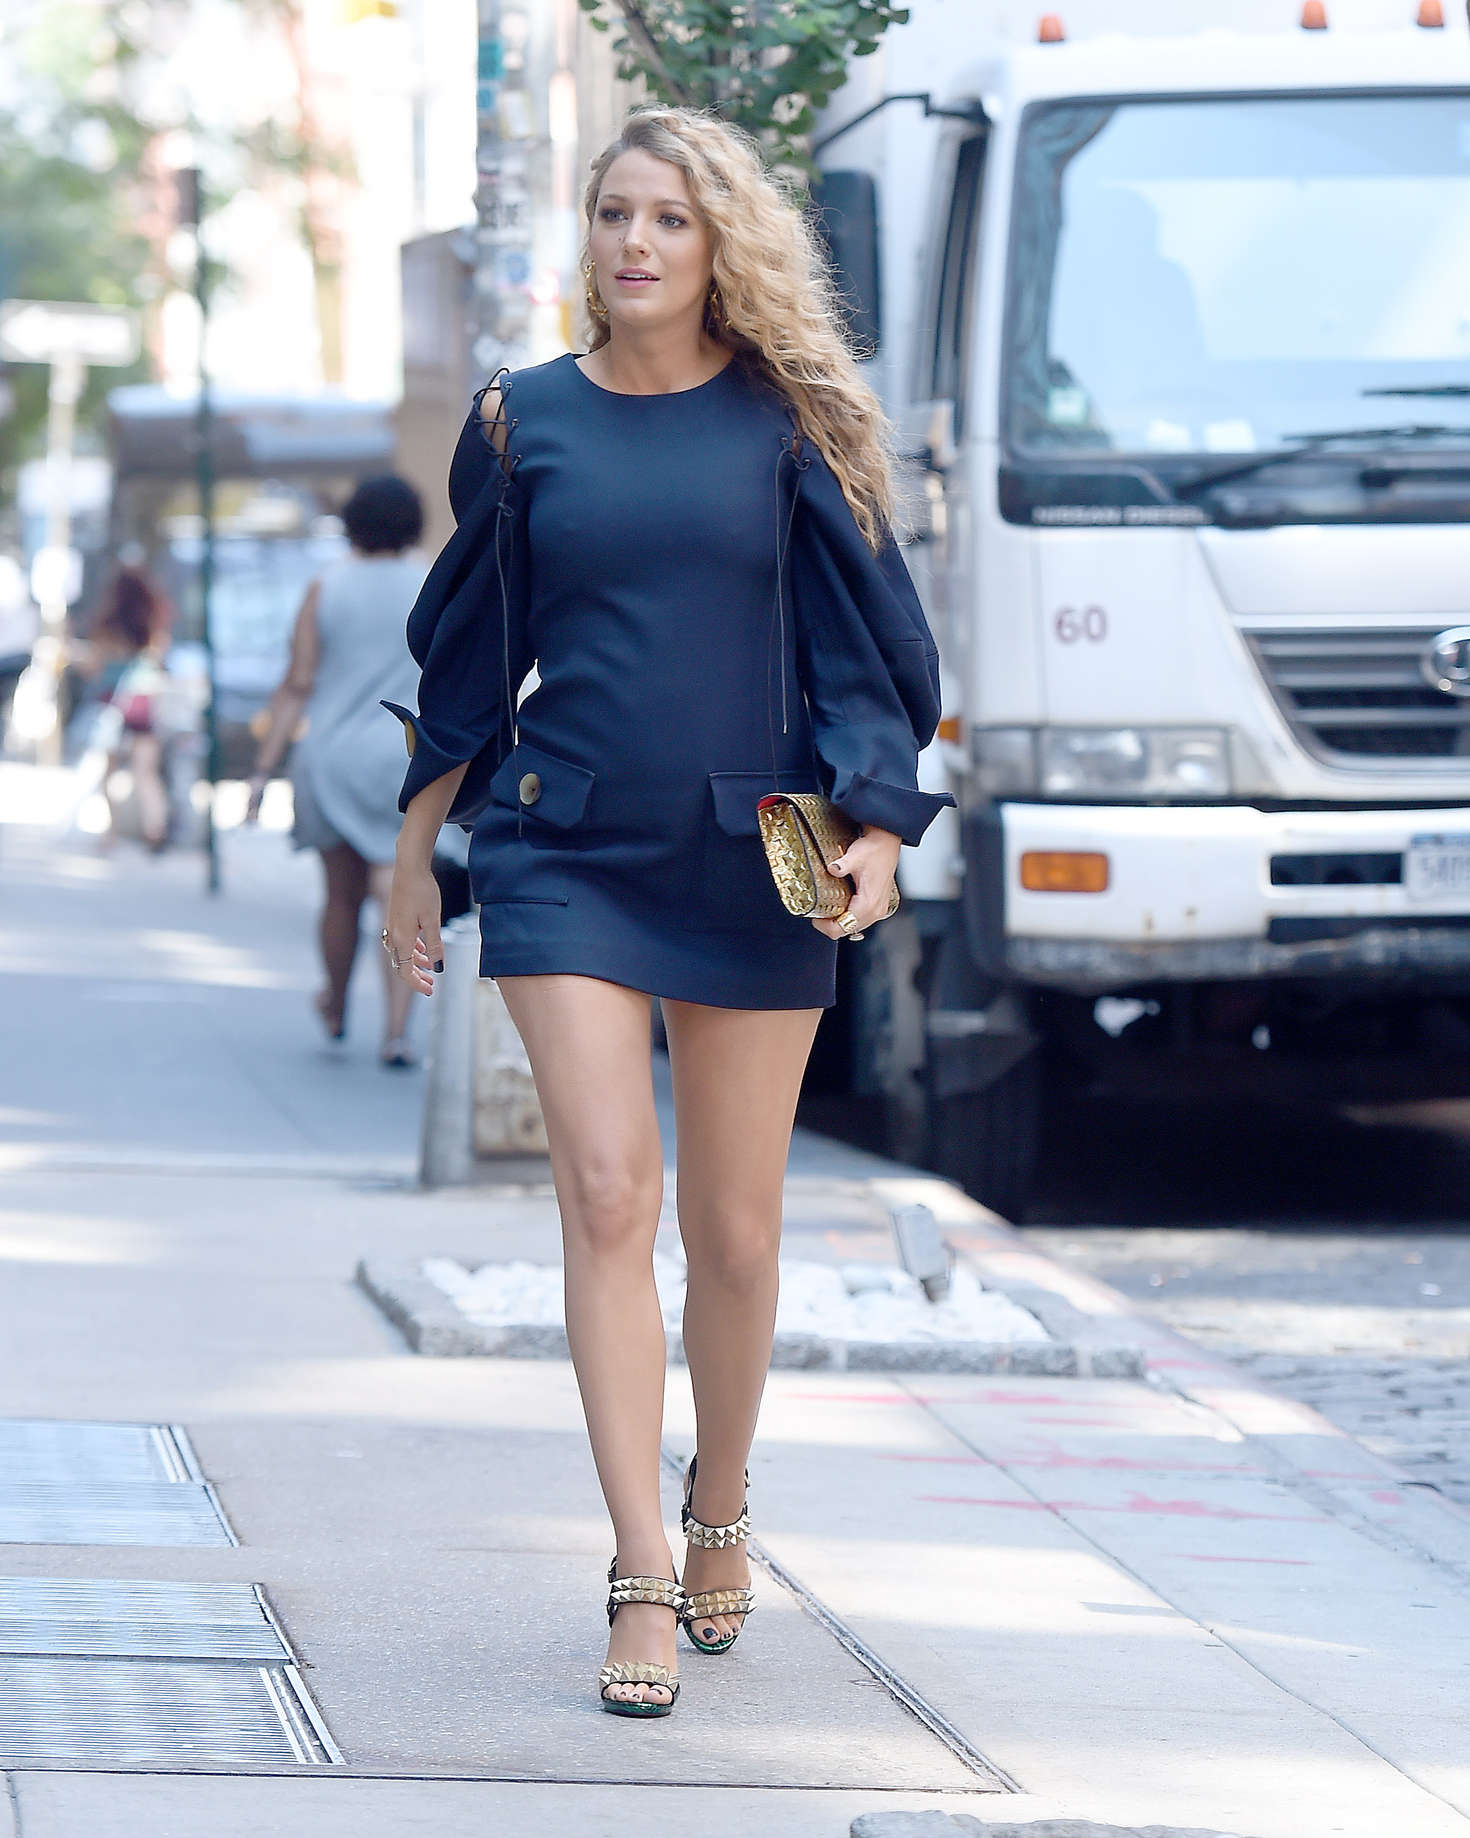 Blake Lively 2016 : Blake Lively in Short Blue Dress -10